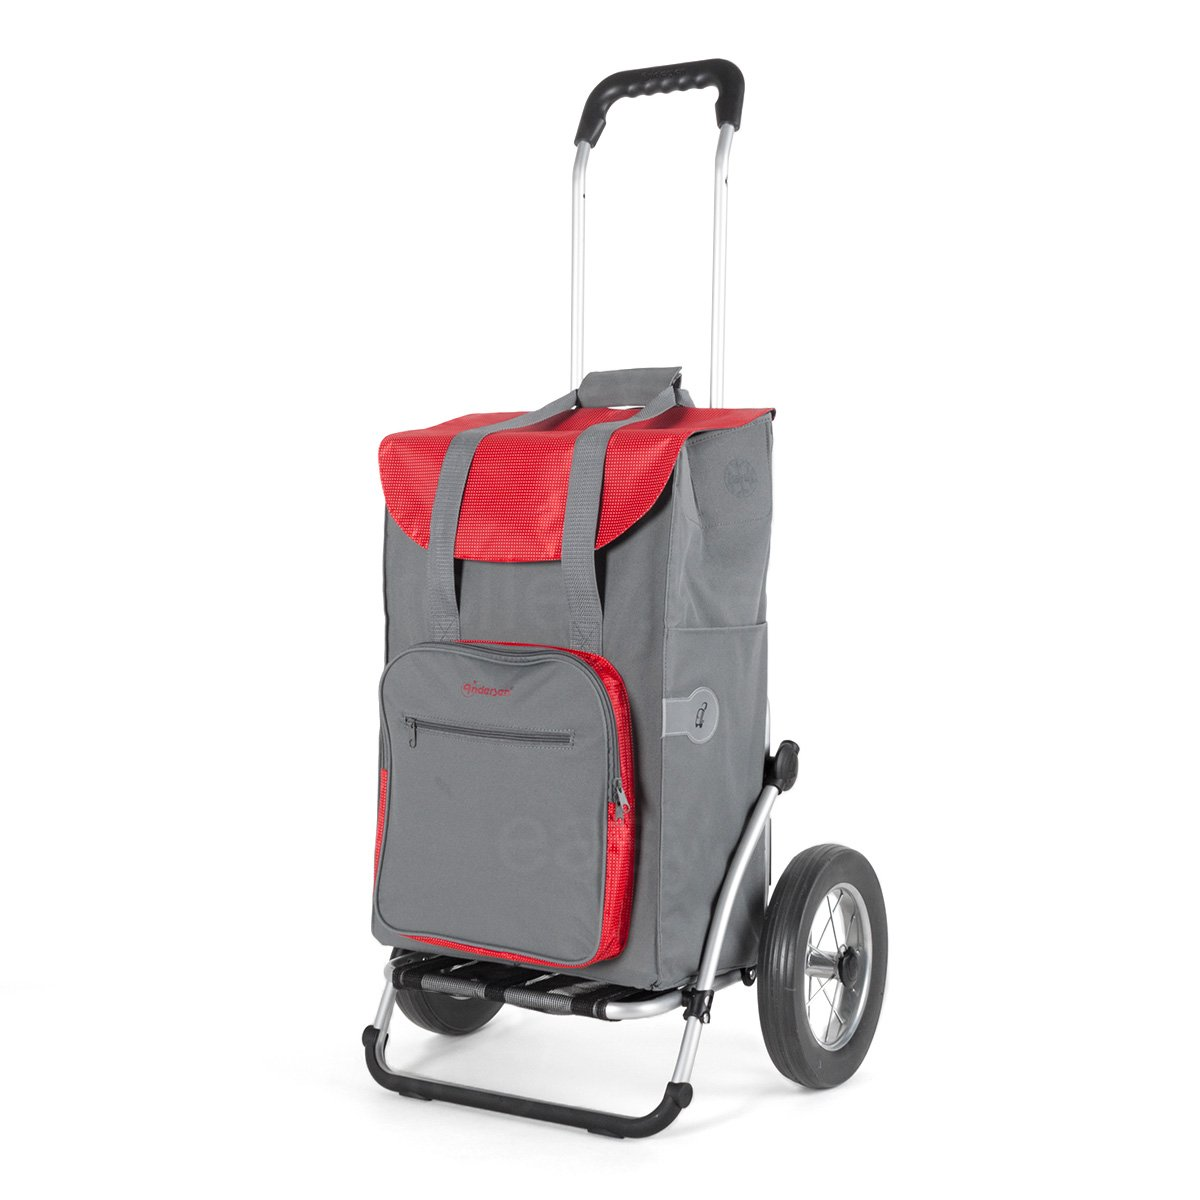 Andersen Shopping trolley Royal with bag Wismar grey, Volume: 45L, thermal bag and aluminium frame Andersen Shopper Manufaktur